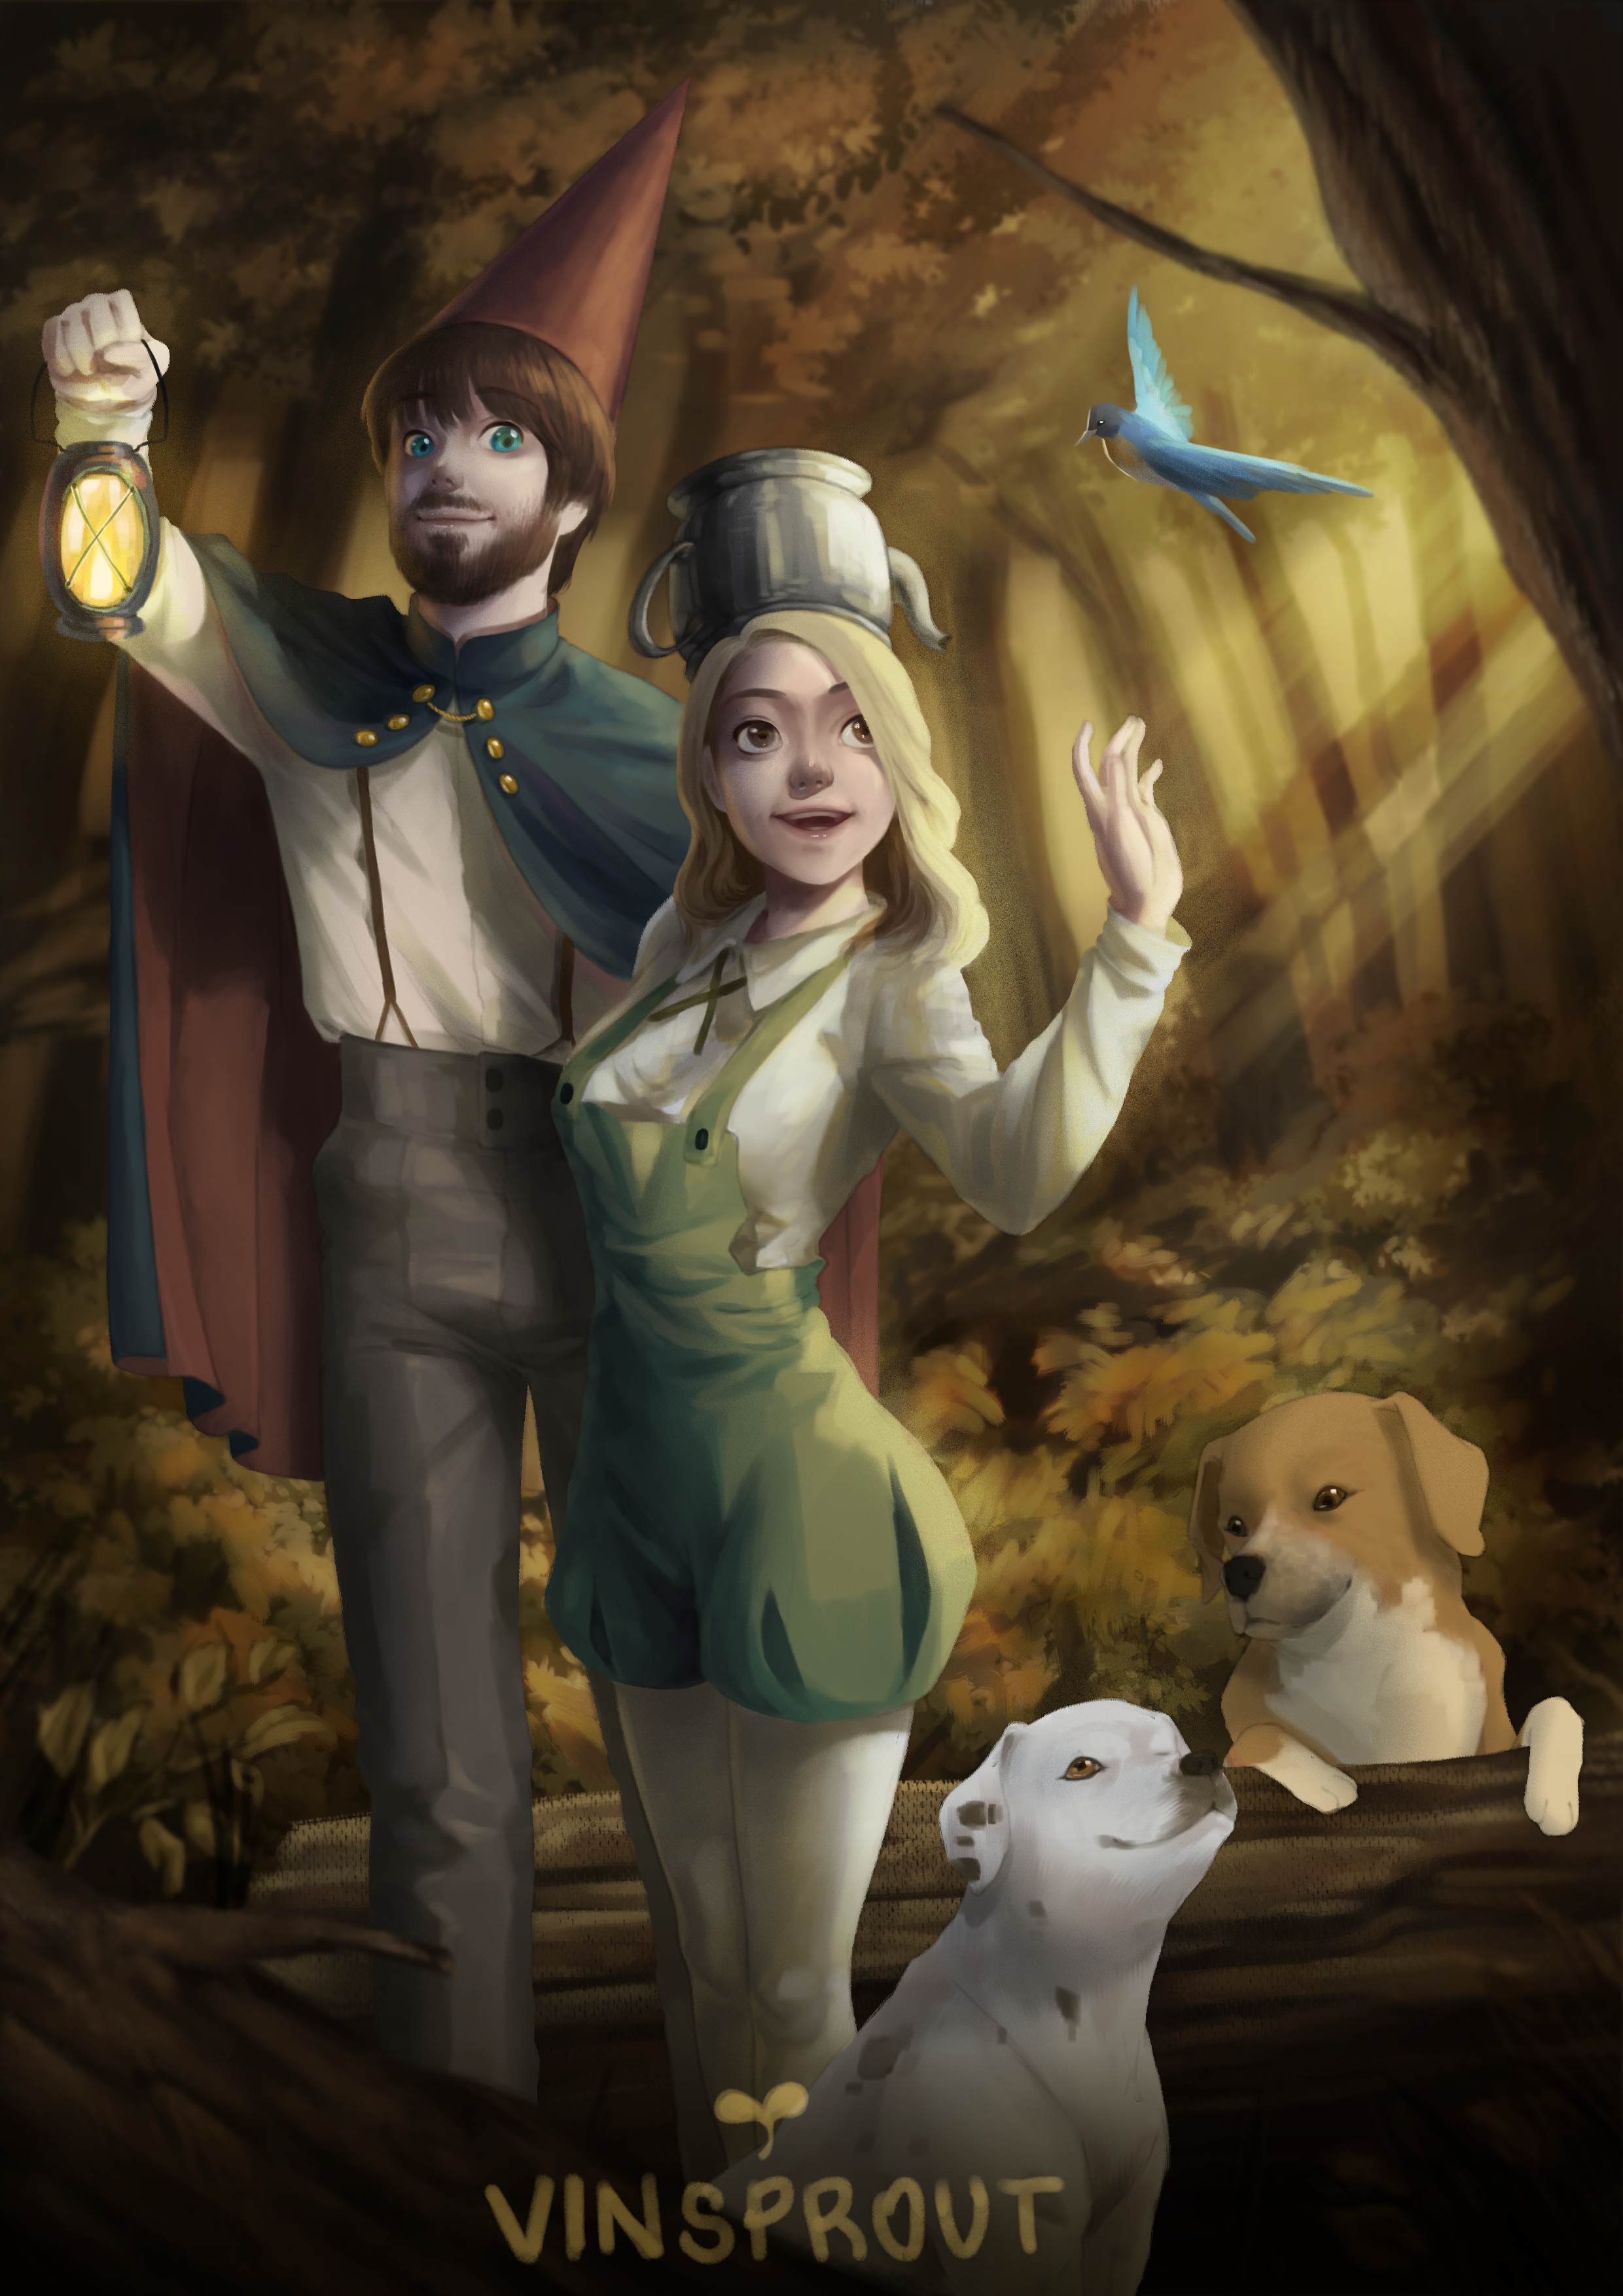 Over The Garden Wall : garden, Garden, Themed, Commission, Illustration!, MUCH!!, Still, Accept, Commissions!, Overthegardenwall